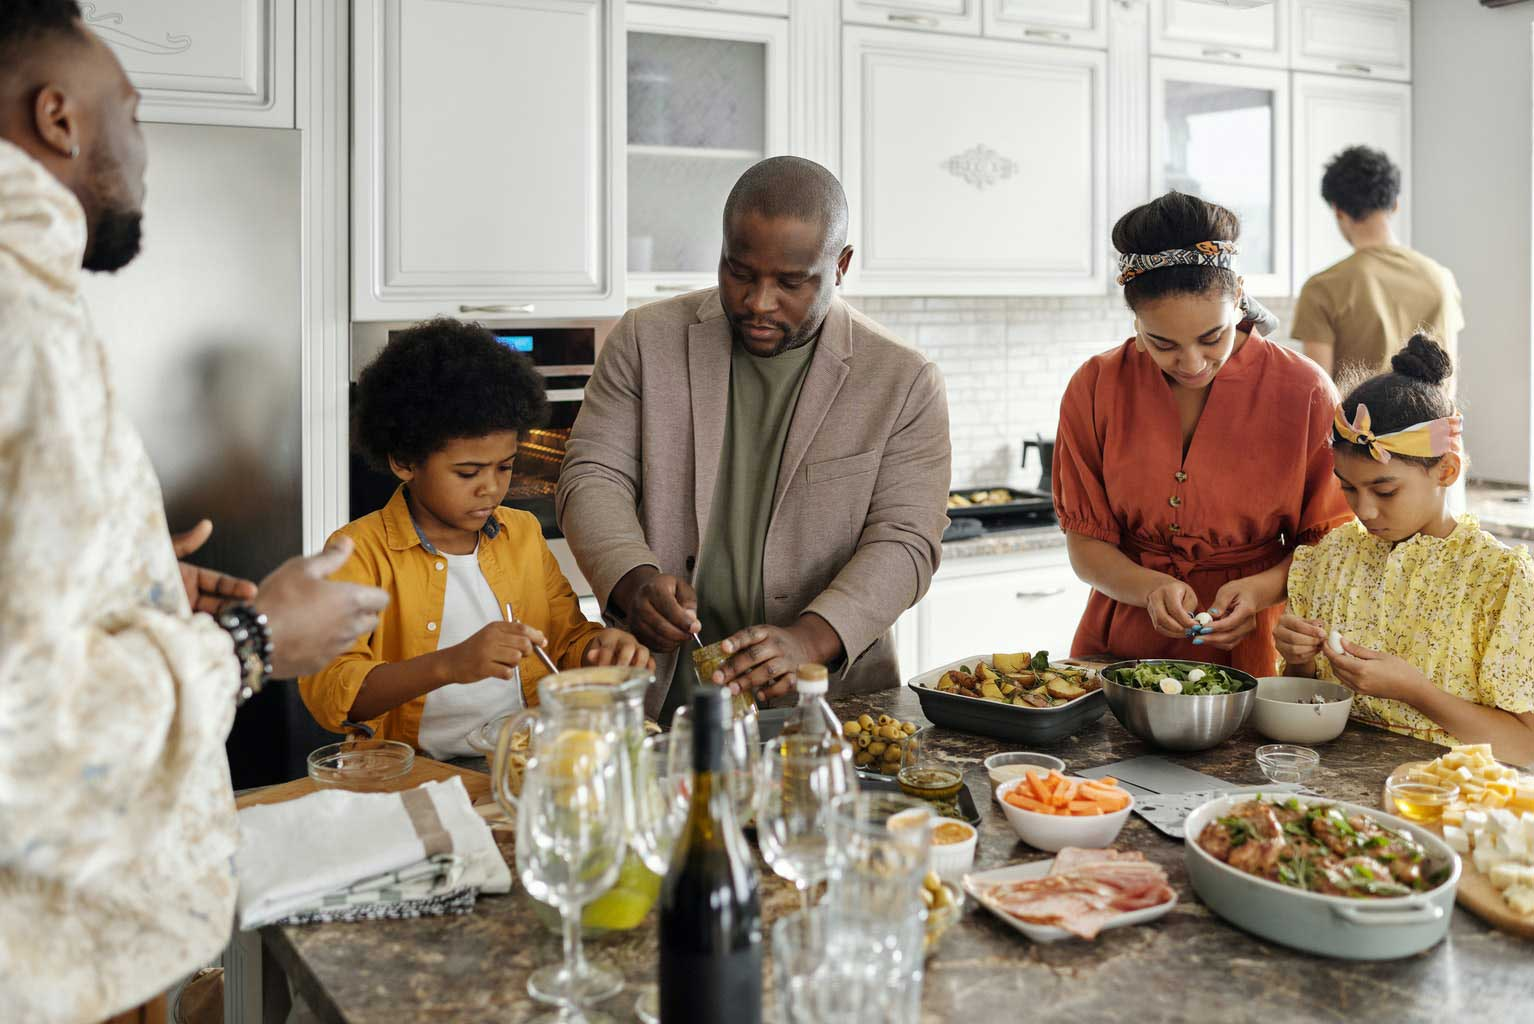 family-preparing-food-at-kitchen-table